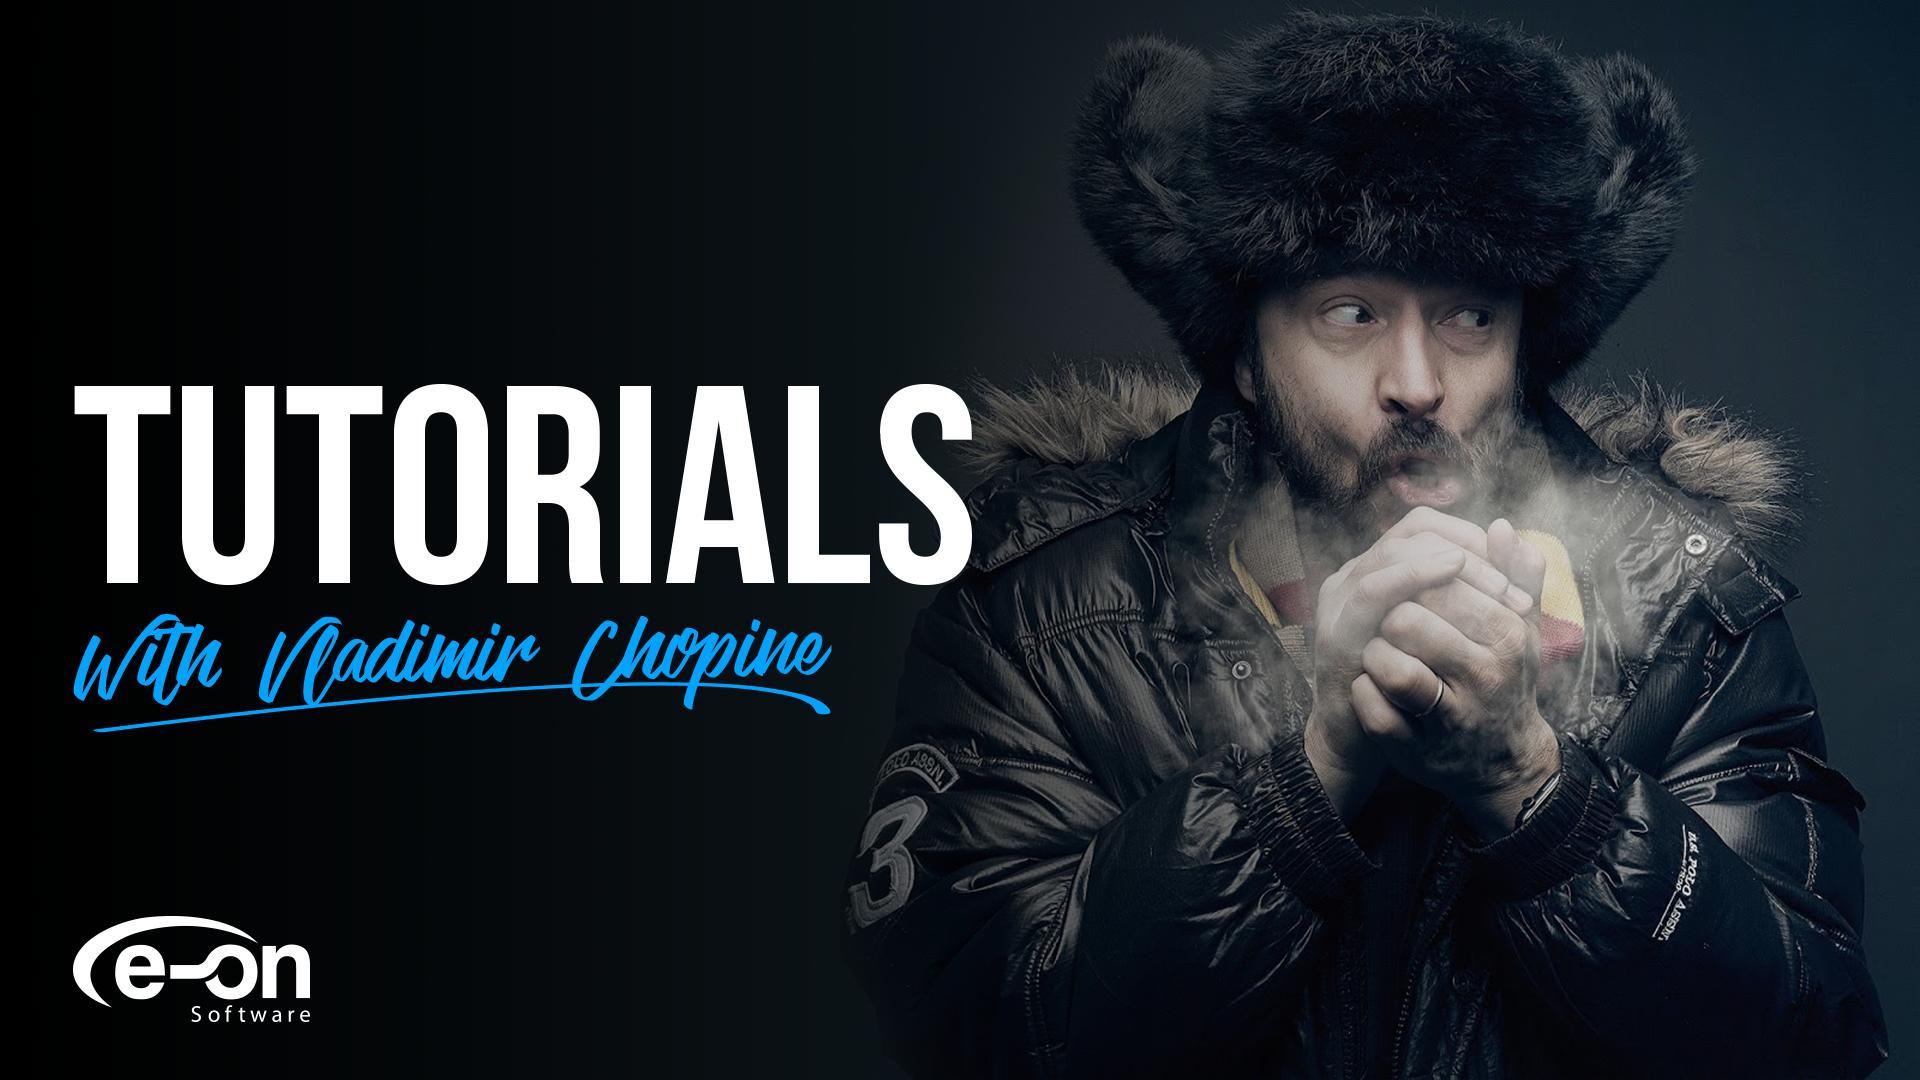 Banner Tutorials with Vladimir Chopine